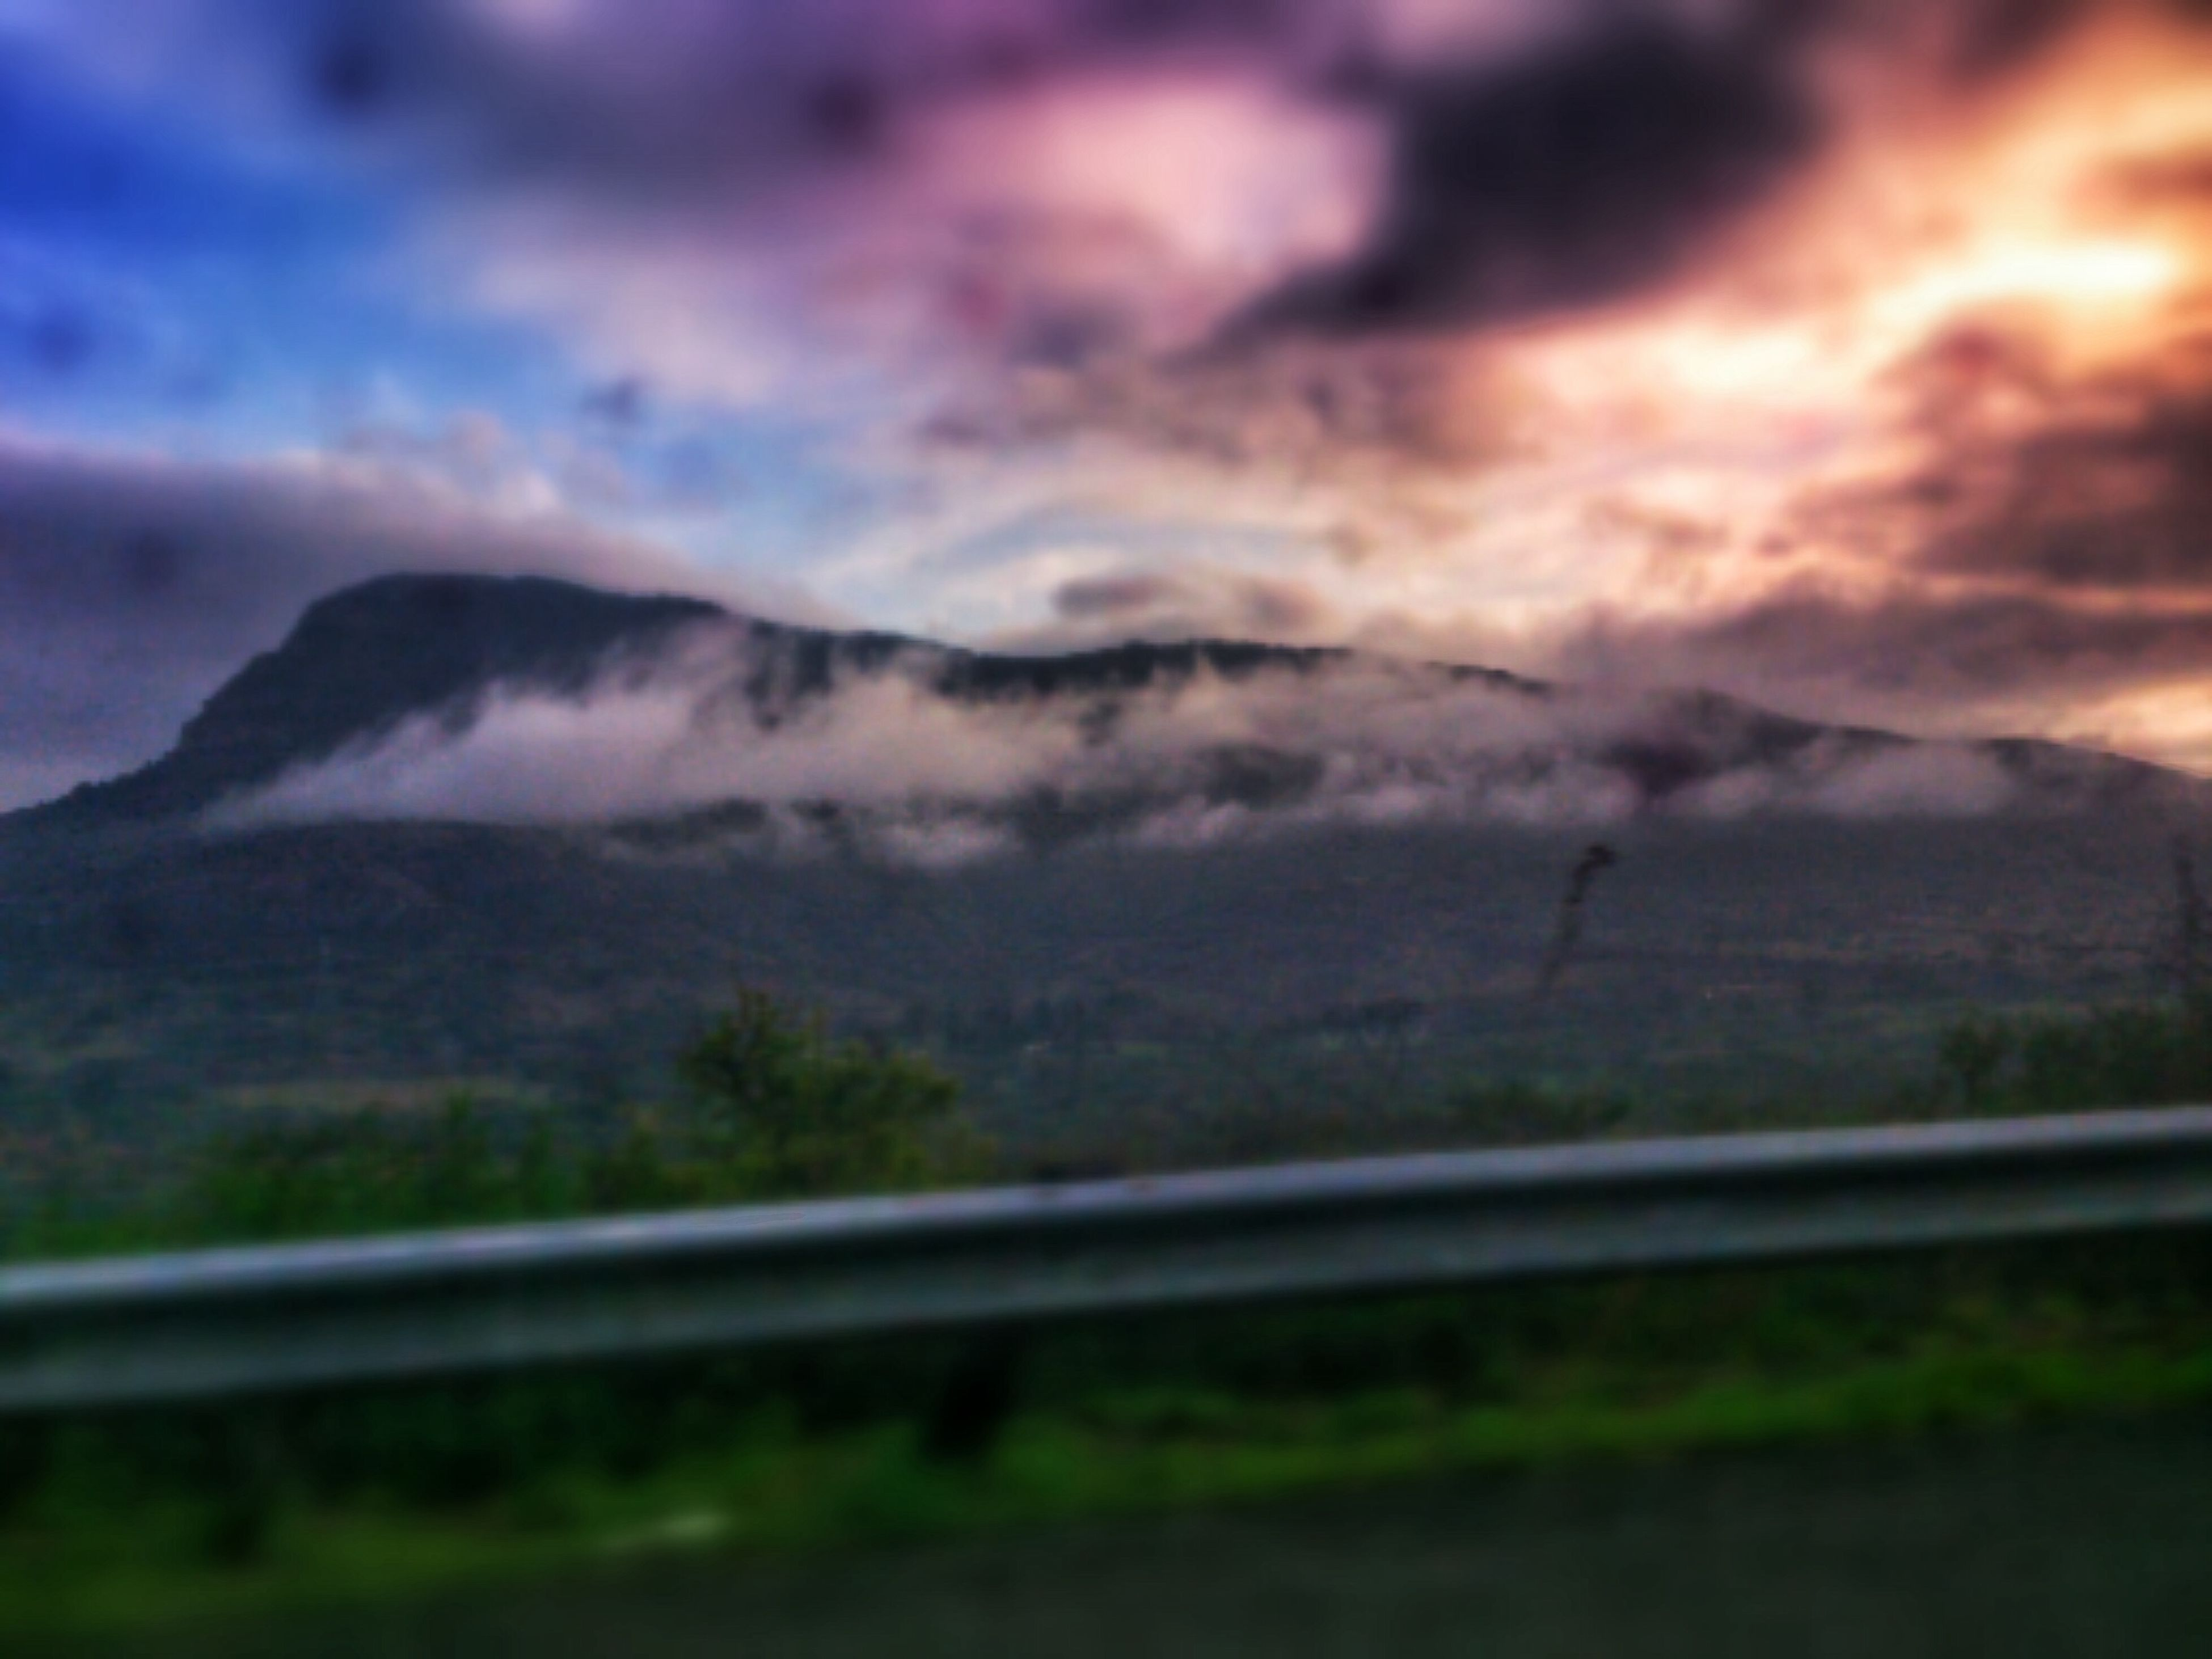 mountain, sky, landscape, tranquil scene, tranquility, scenics, mountain range, cloud - sky, beauty in nature, nature, sunset, cloudy, cloud, field, non-urban scene, idyllic, weather, remote, no people, outdoors